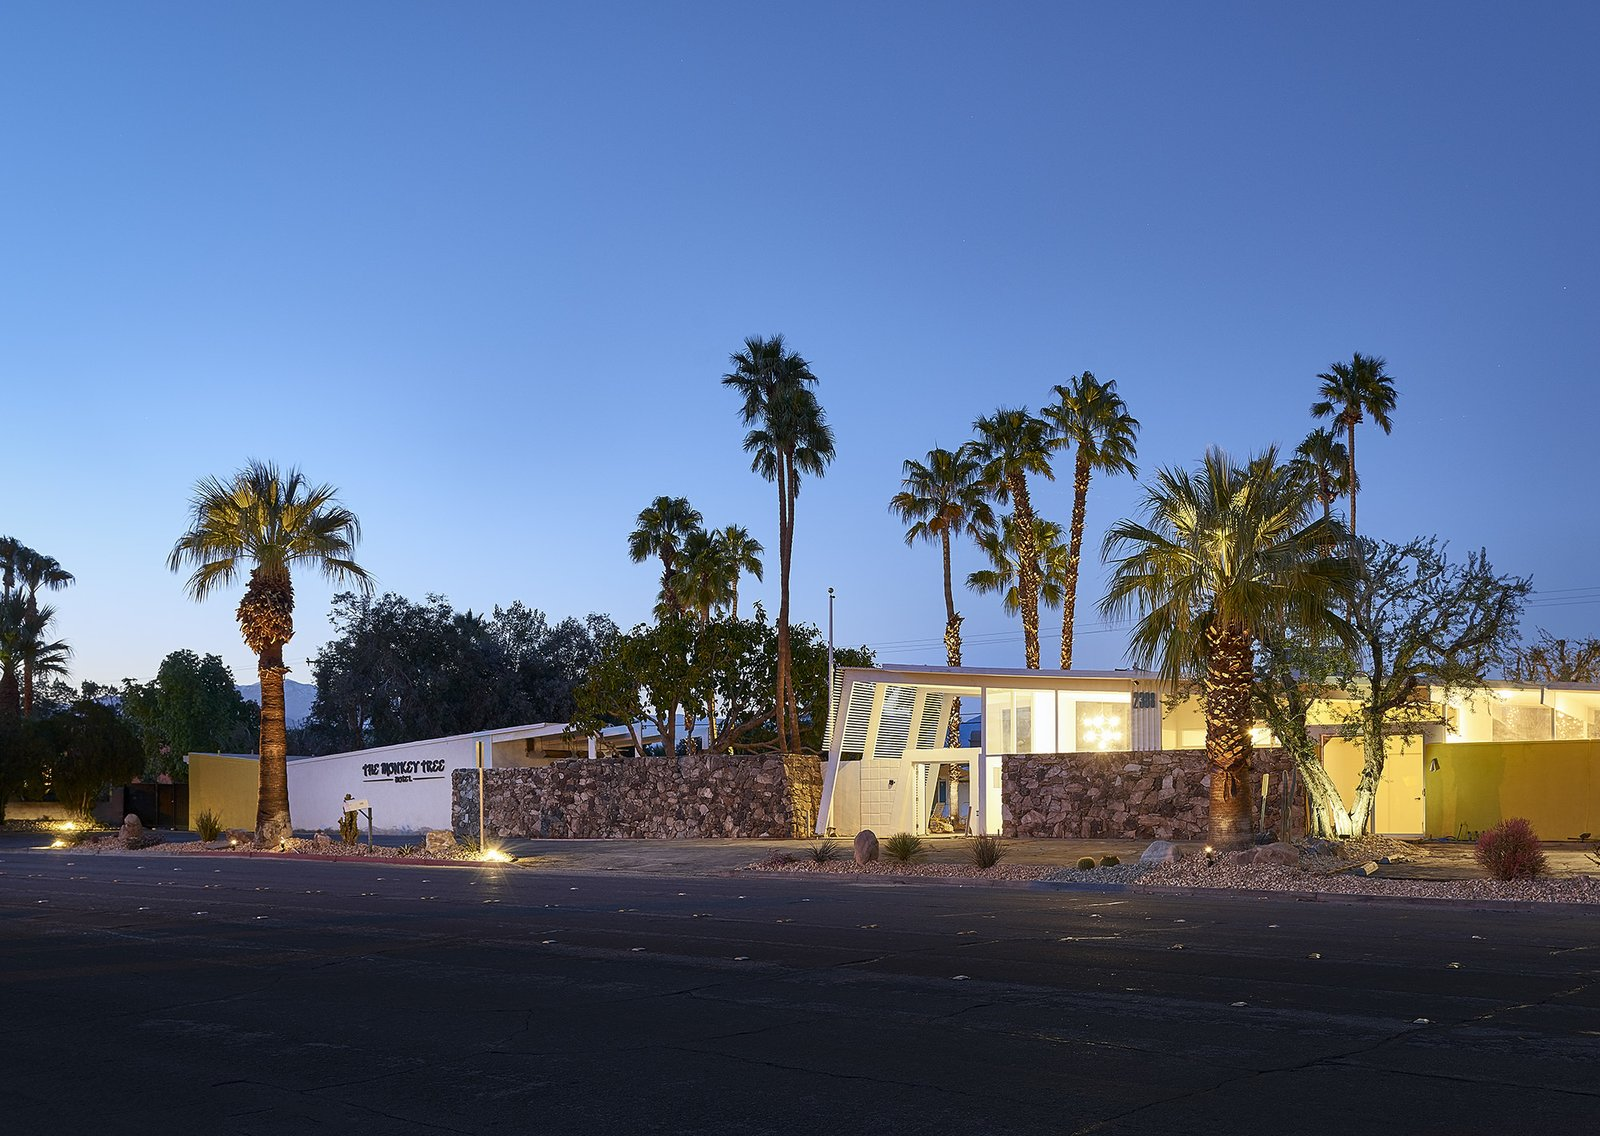 """Exterior, Stone Siding Material, and Mid-Century Building Type To recreate that 1960s flair Kathy, a designer, spent four months scouring for vintage treasures. """"Because we were buying a Palm Springs midcentury modern hotel, I wanted to furnish it with pieces that made sense and were true to that time period,"""" Kathy says. """"That said, I wasn't too strict."""" That means guests may find an '80s chrome coffee table or Jonathan Adler seconds alongside macrame wall hangings and Gainey pots.   The Monkey Tree Hotel from This Palm Springs Hotel is Filled with Vintage Midcentury Modern Finds"""